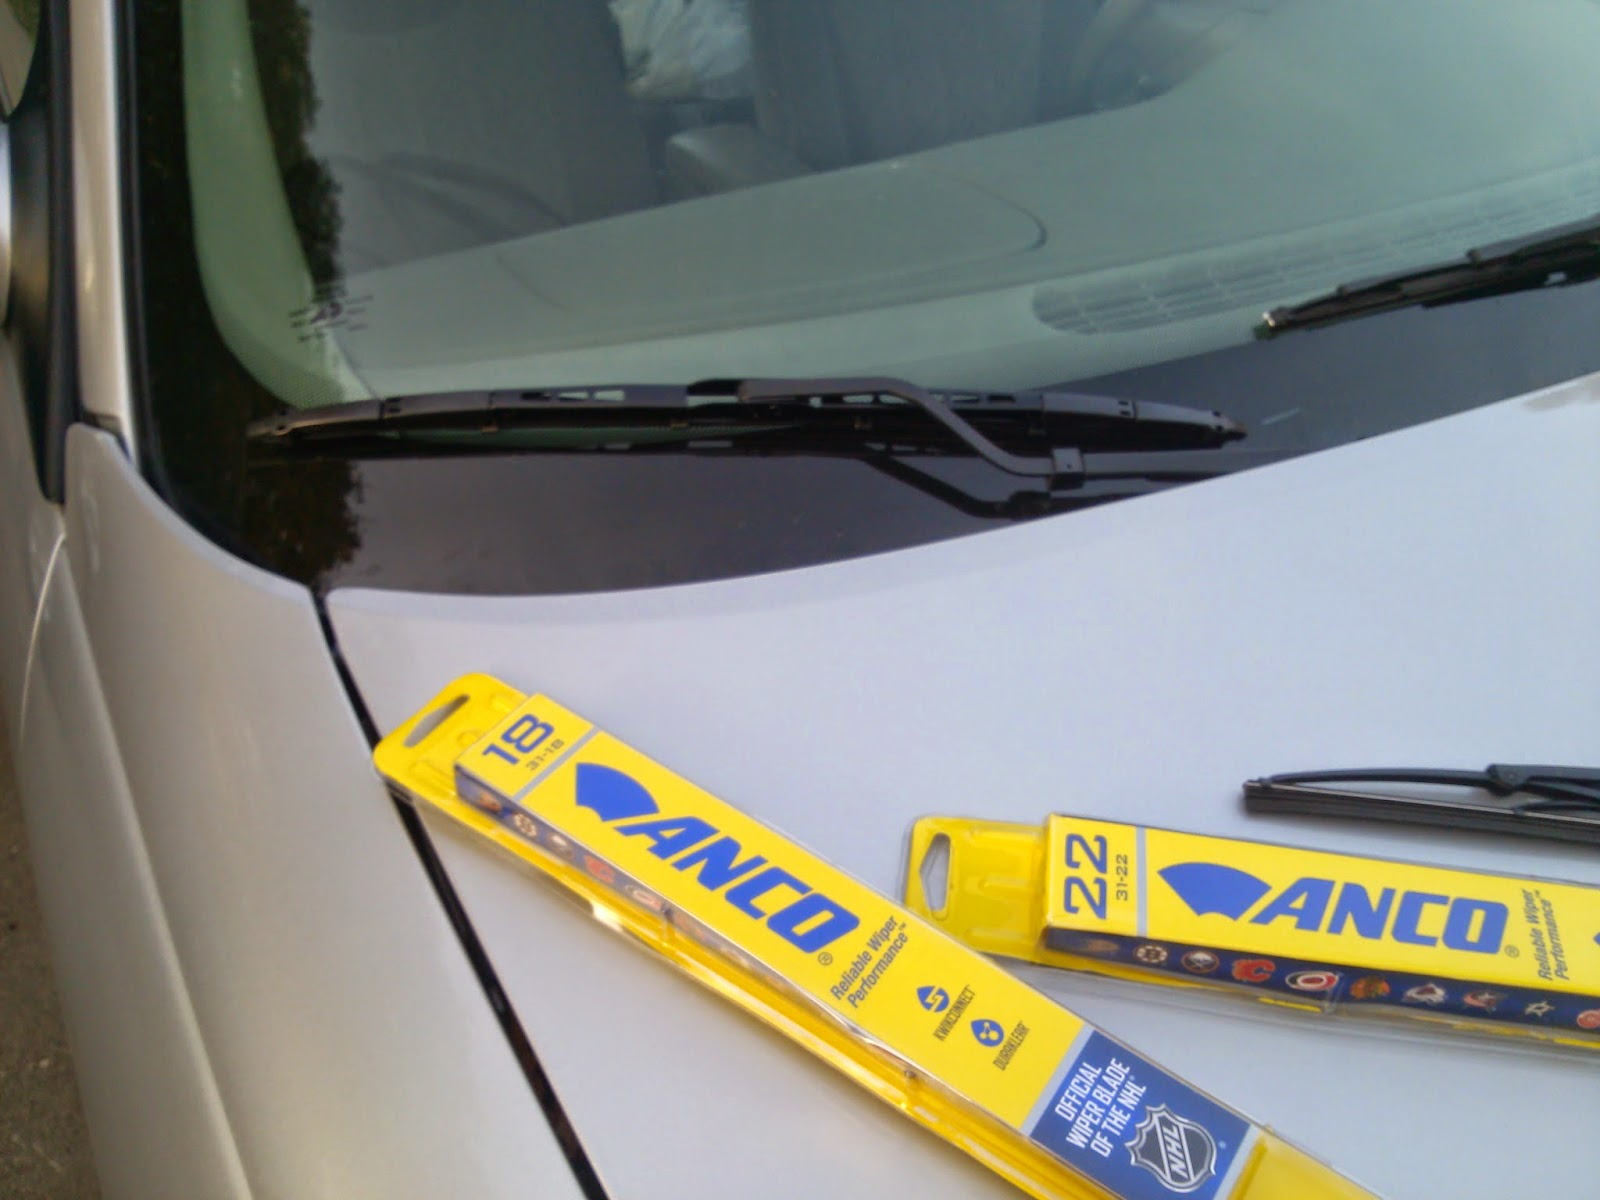 EZwipers Windshield Wiper Blades Review + Giveaway